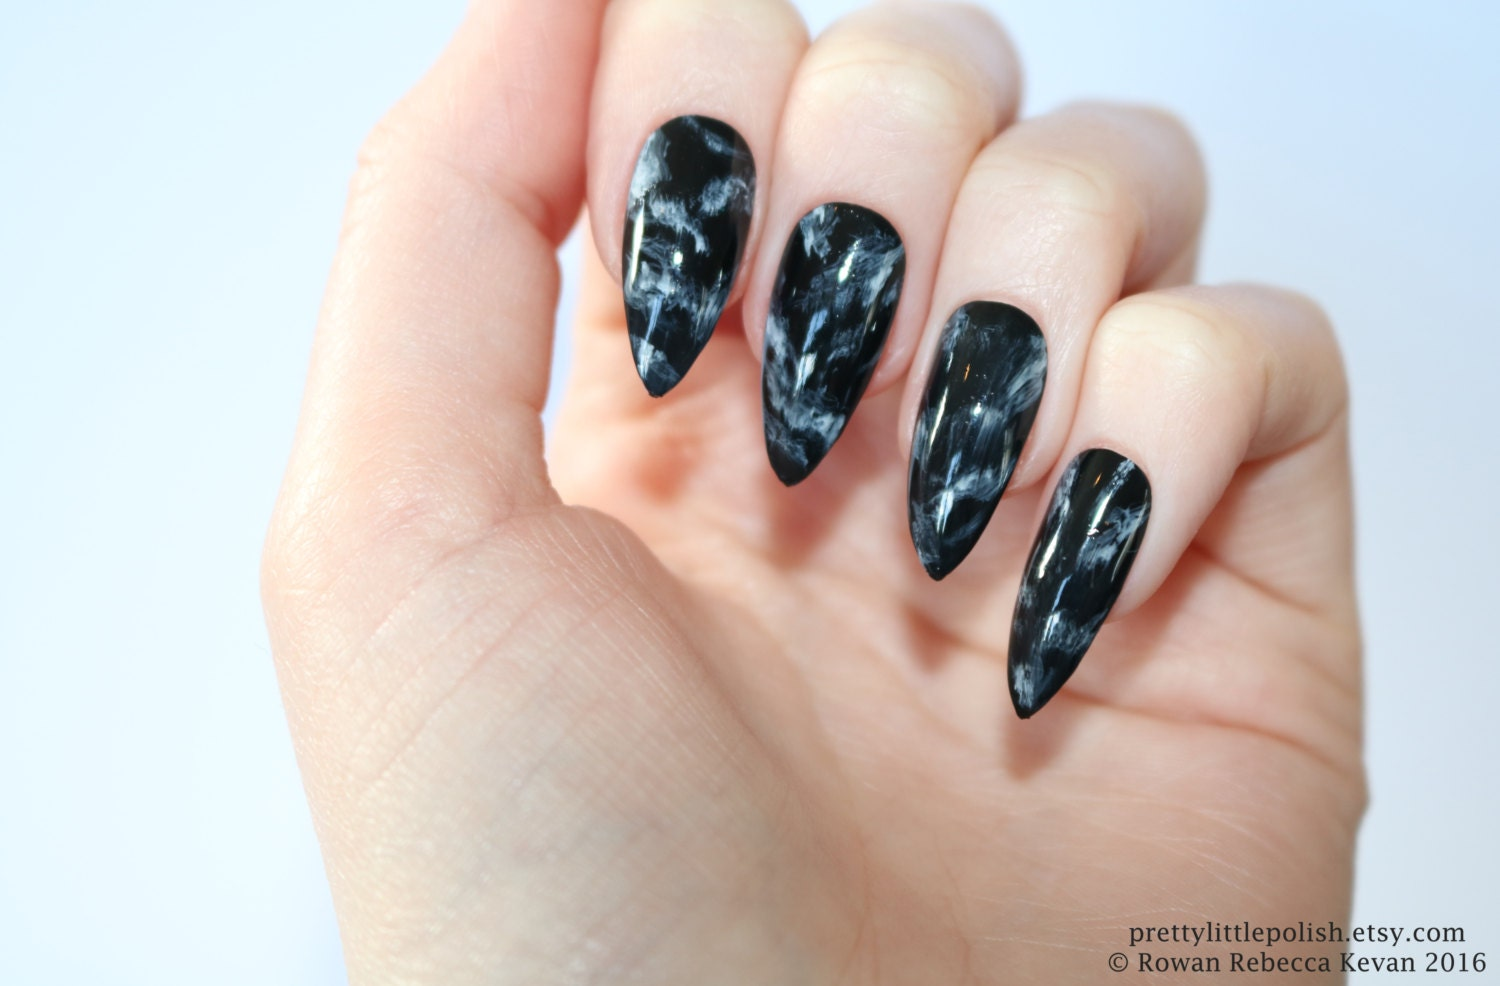 Stiletto nails Black marble stiletto nails Fake nails Press